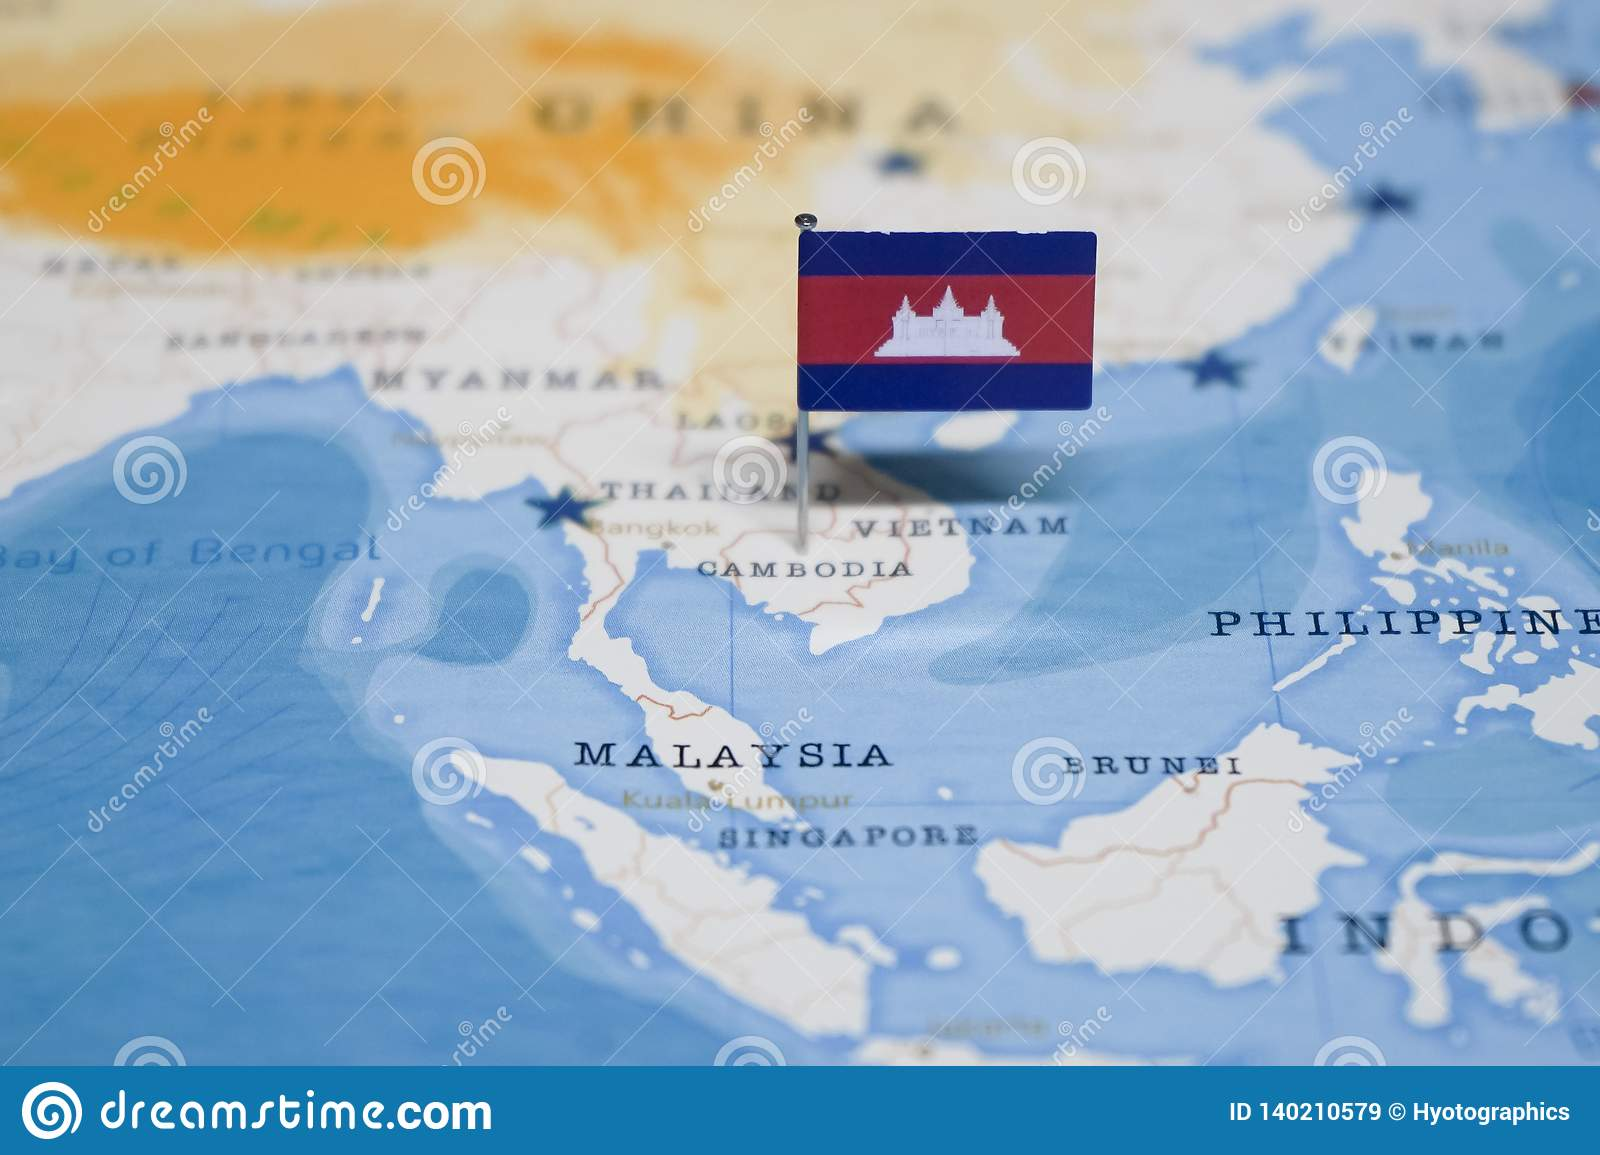 The Flag Of Cambodia In The World Map Stock Image - Image of ...